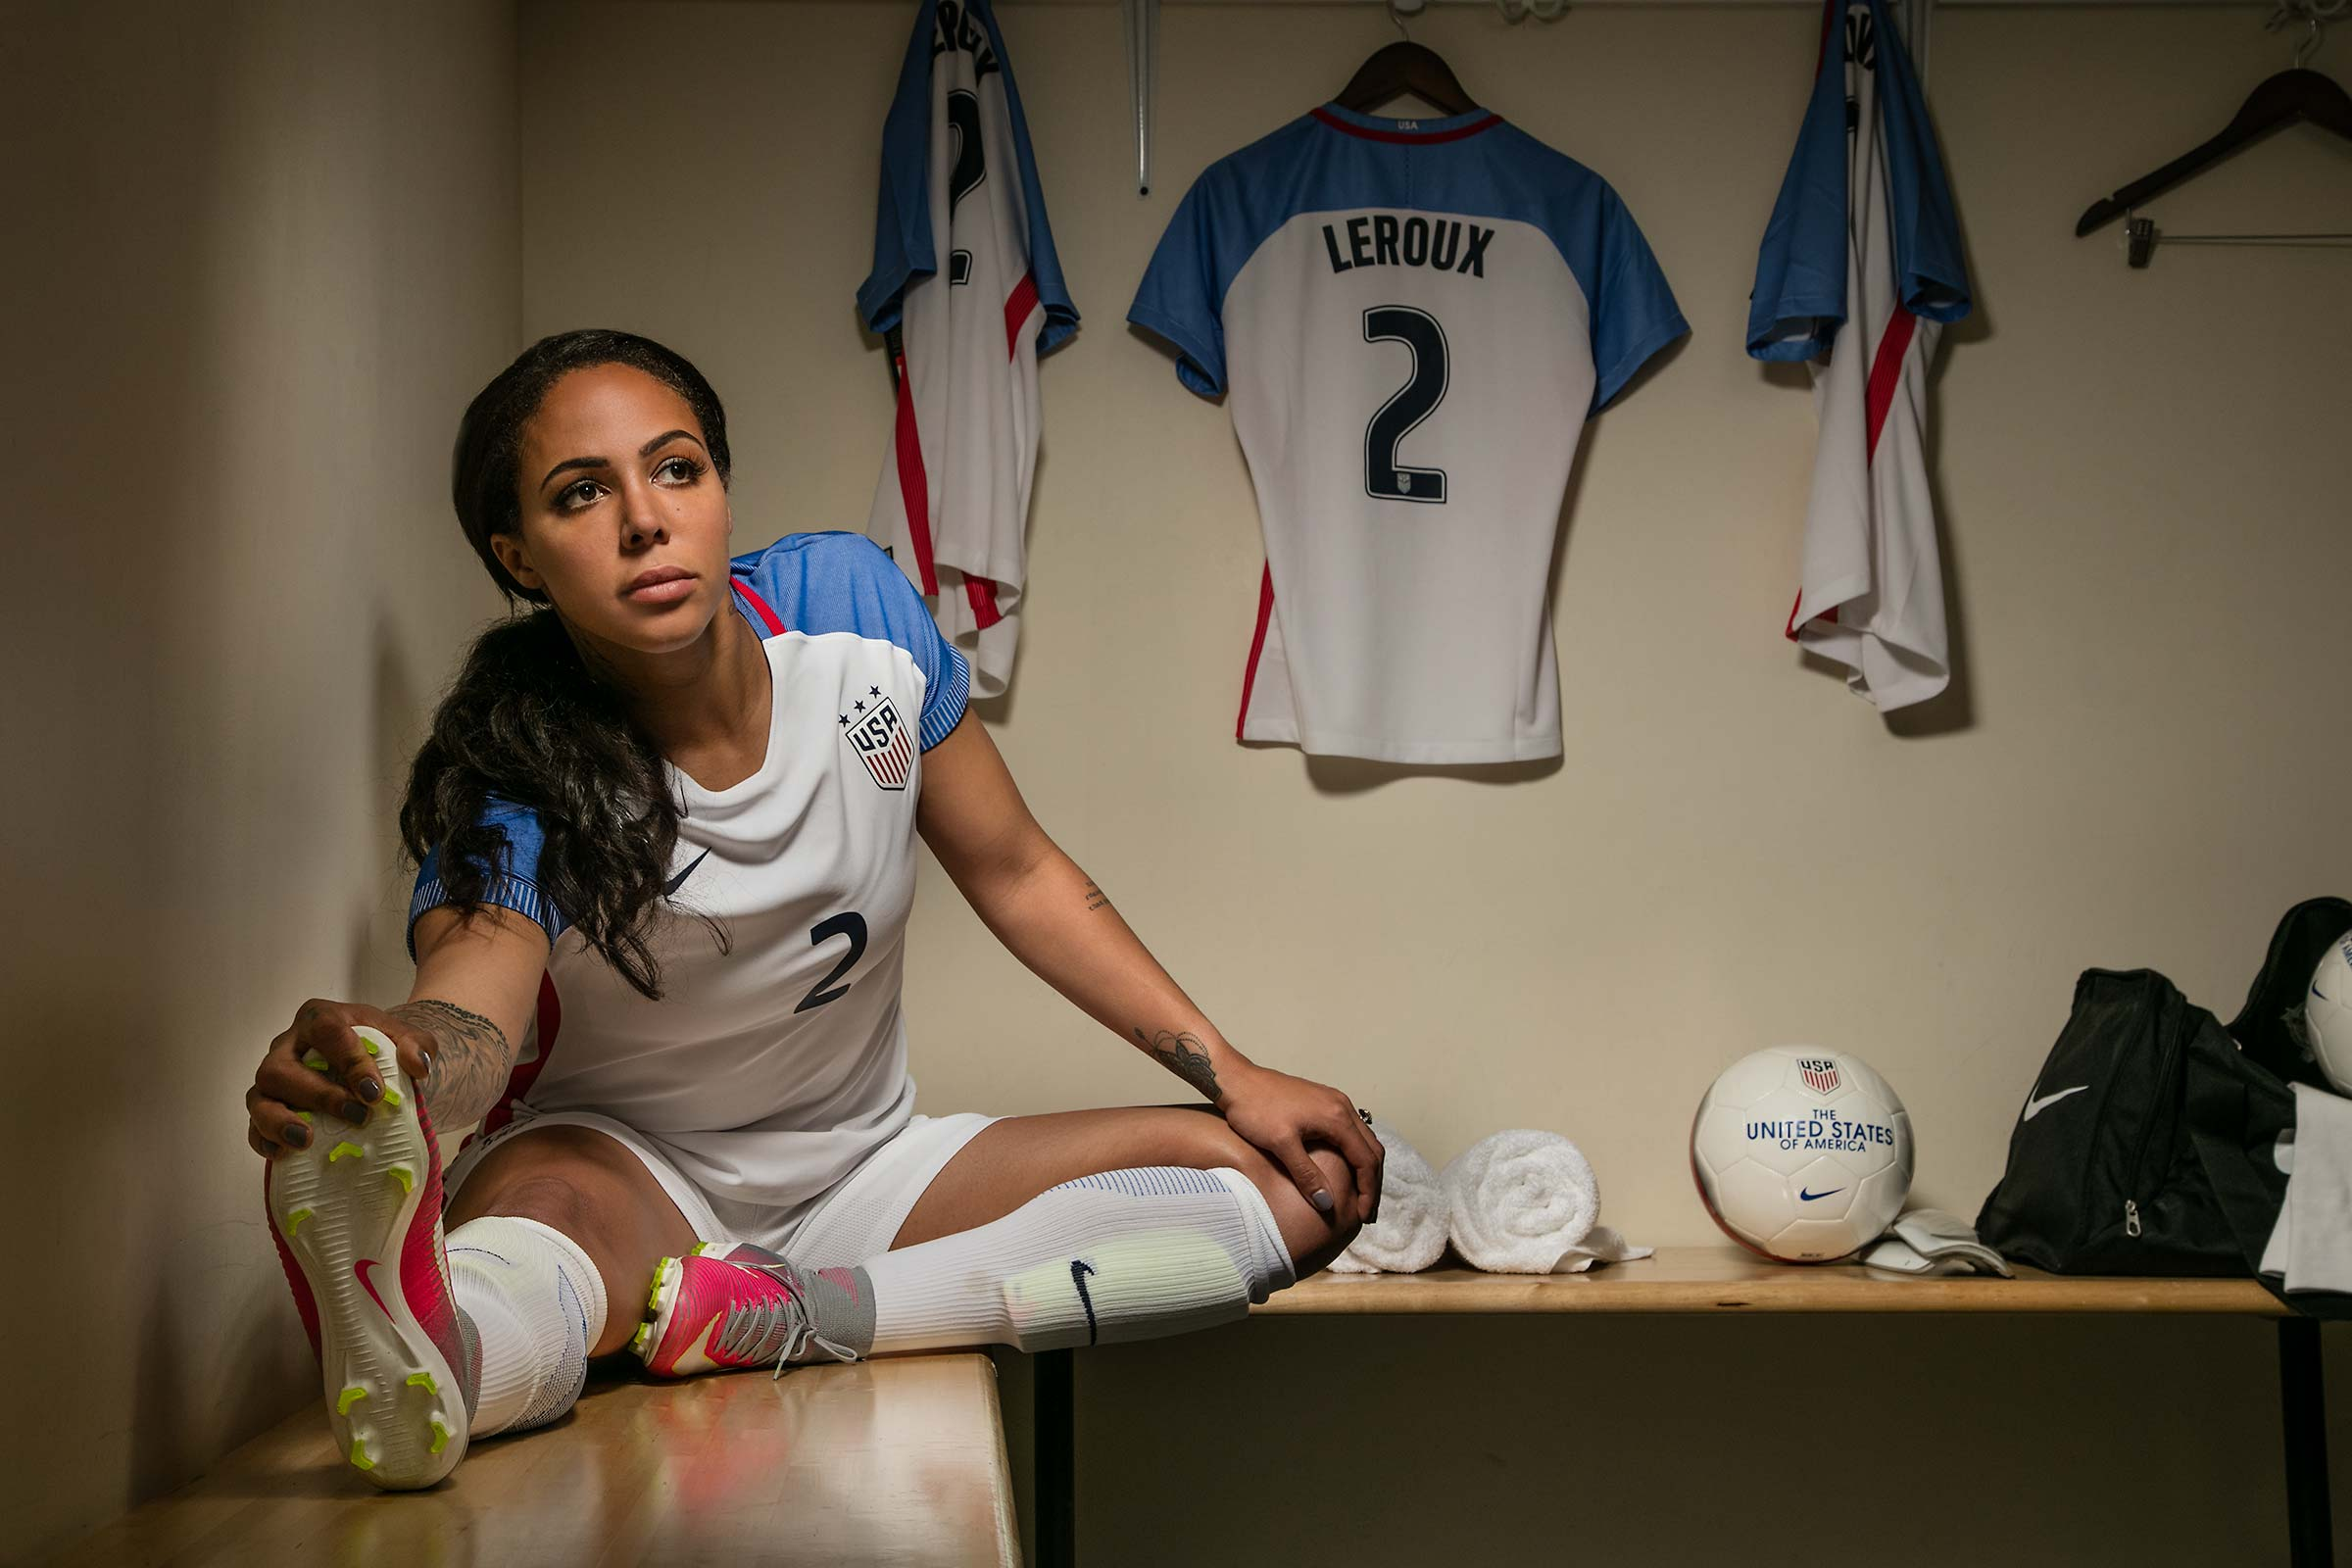 Portrait of Team USA Professional soccer player Sydney Leroux in Locker room